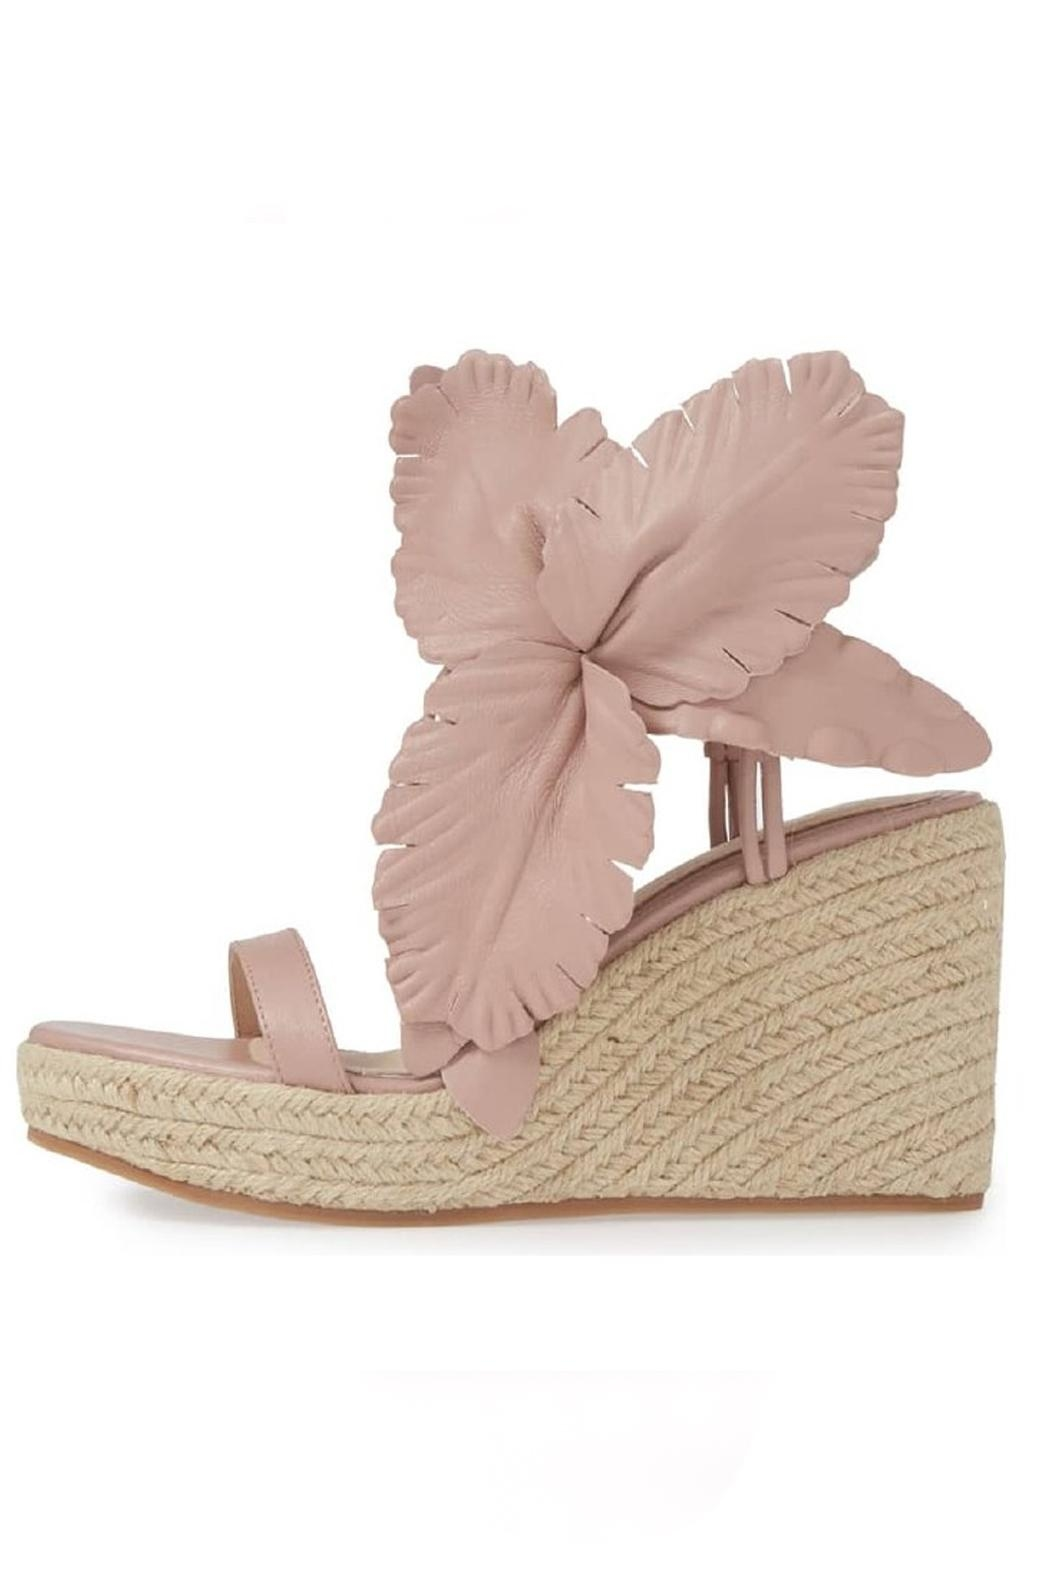 Cecelia New York Floral Espadrille Wedges - Main Image